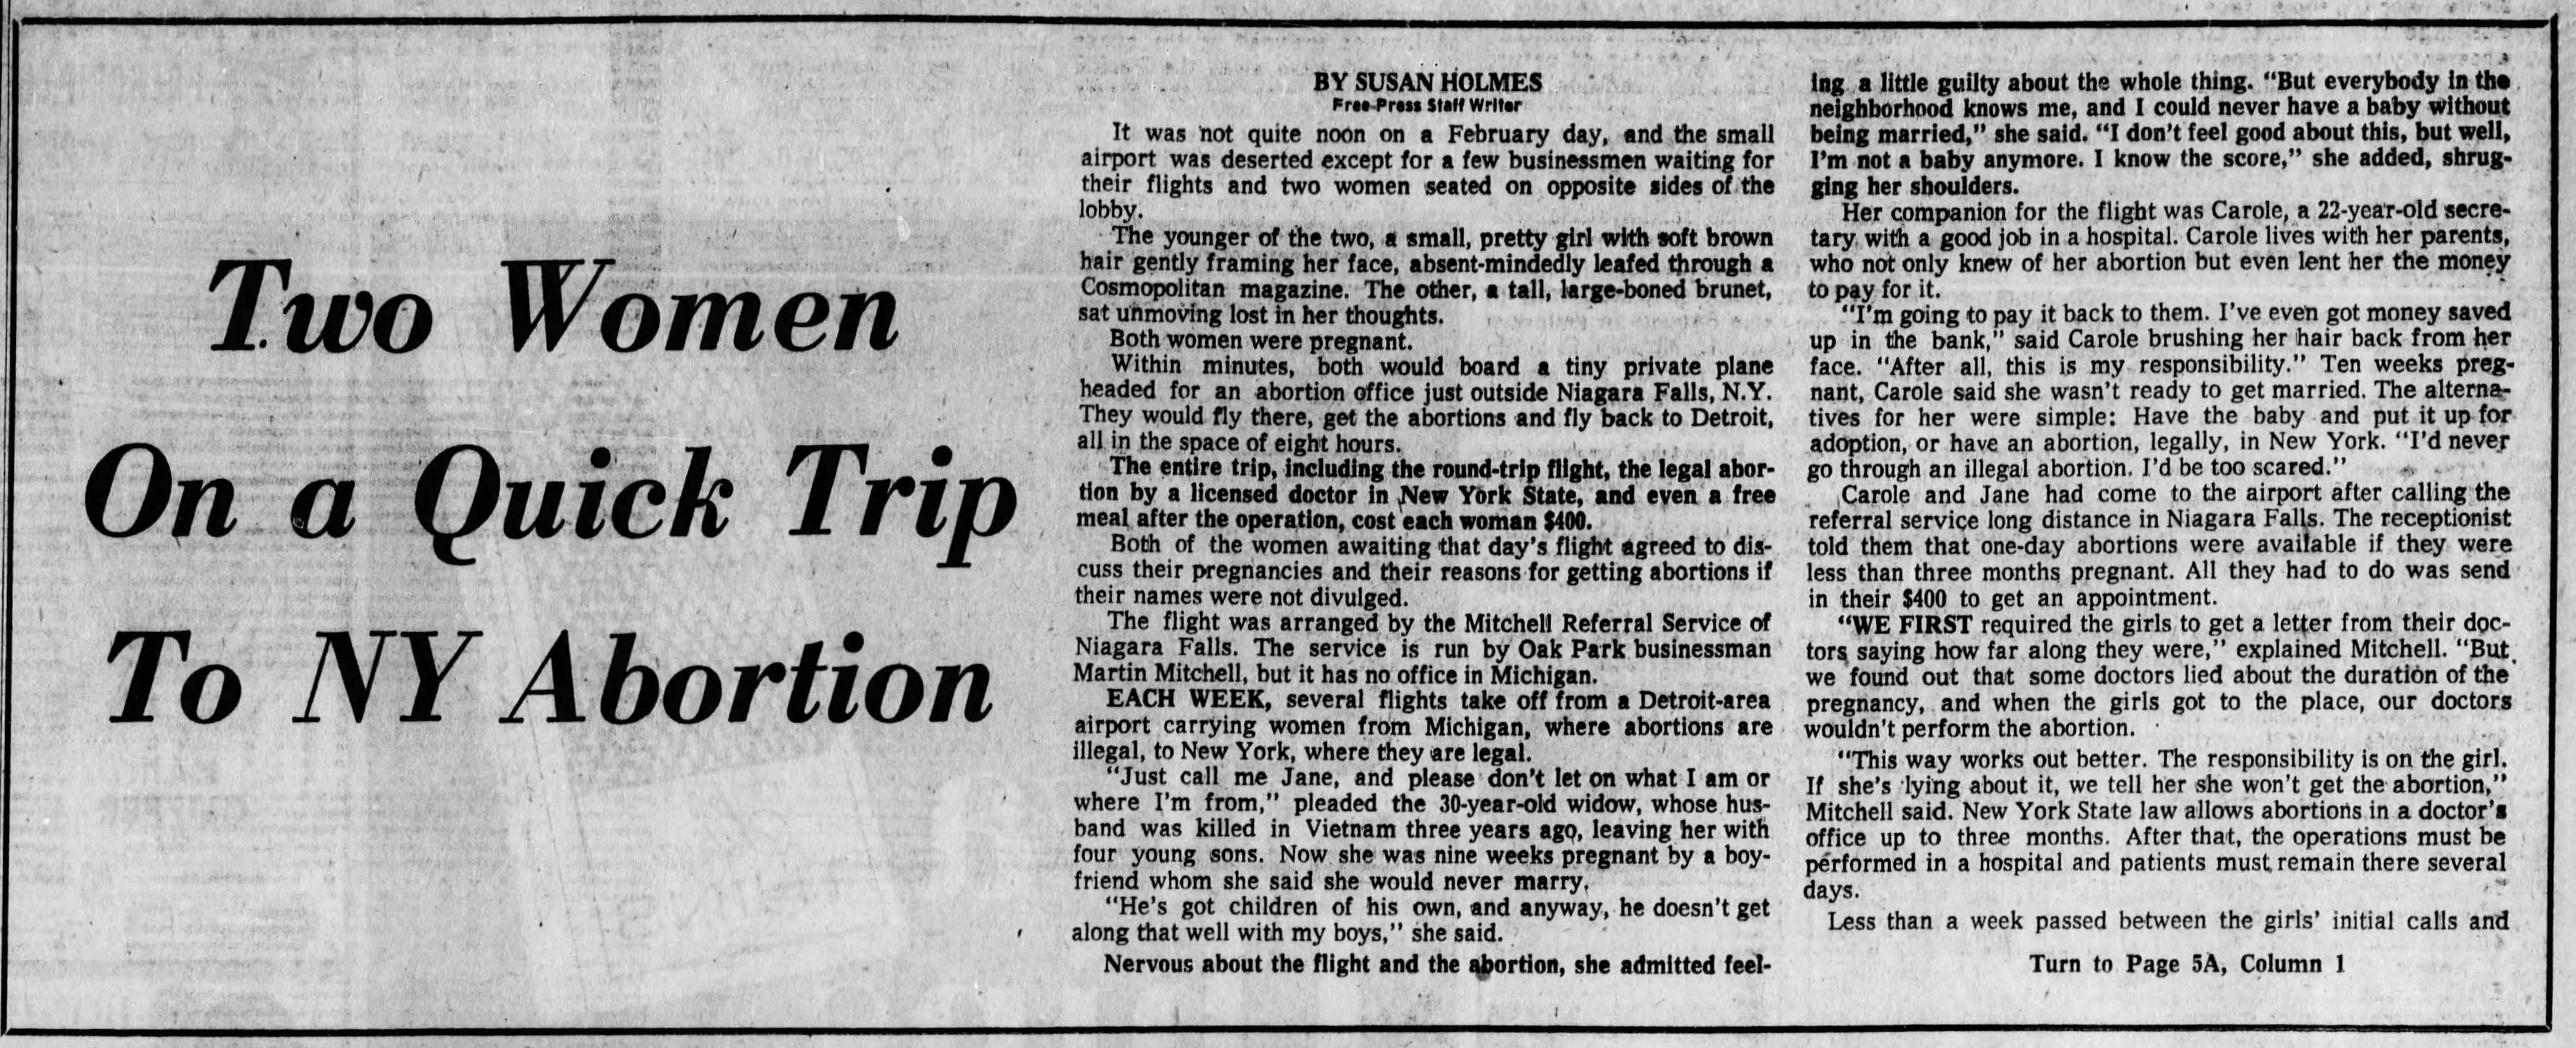 A Detroit Free Press article from 1971 following two women's trips to Niagara Falls, New York to have abortions with Mitchell Referral Service.